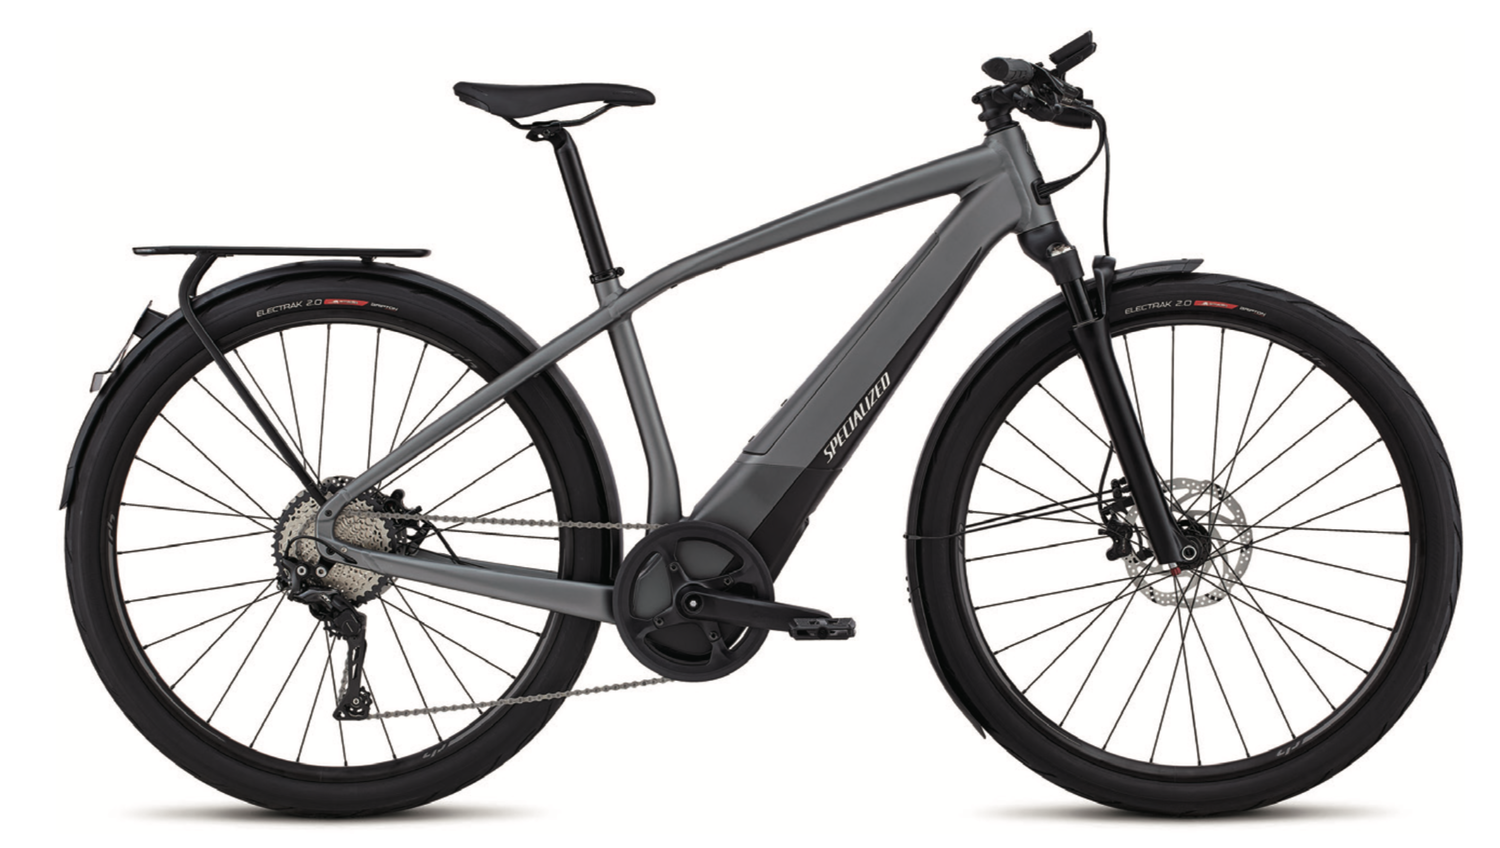 Specialized Vado 6.0 — ElectriCityBikes